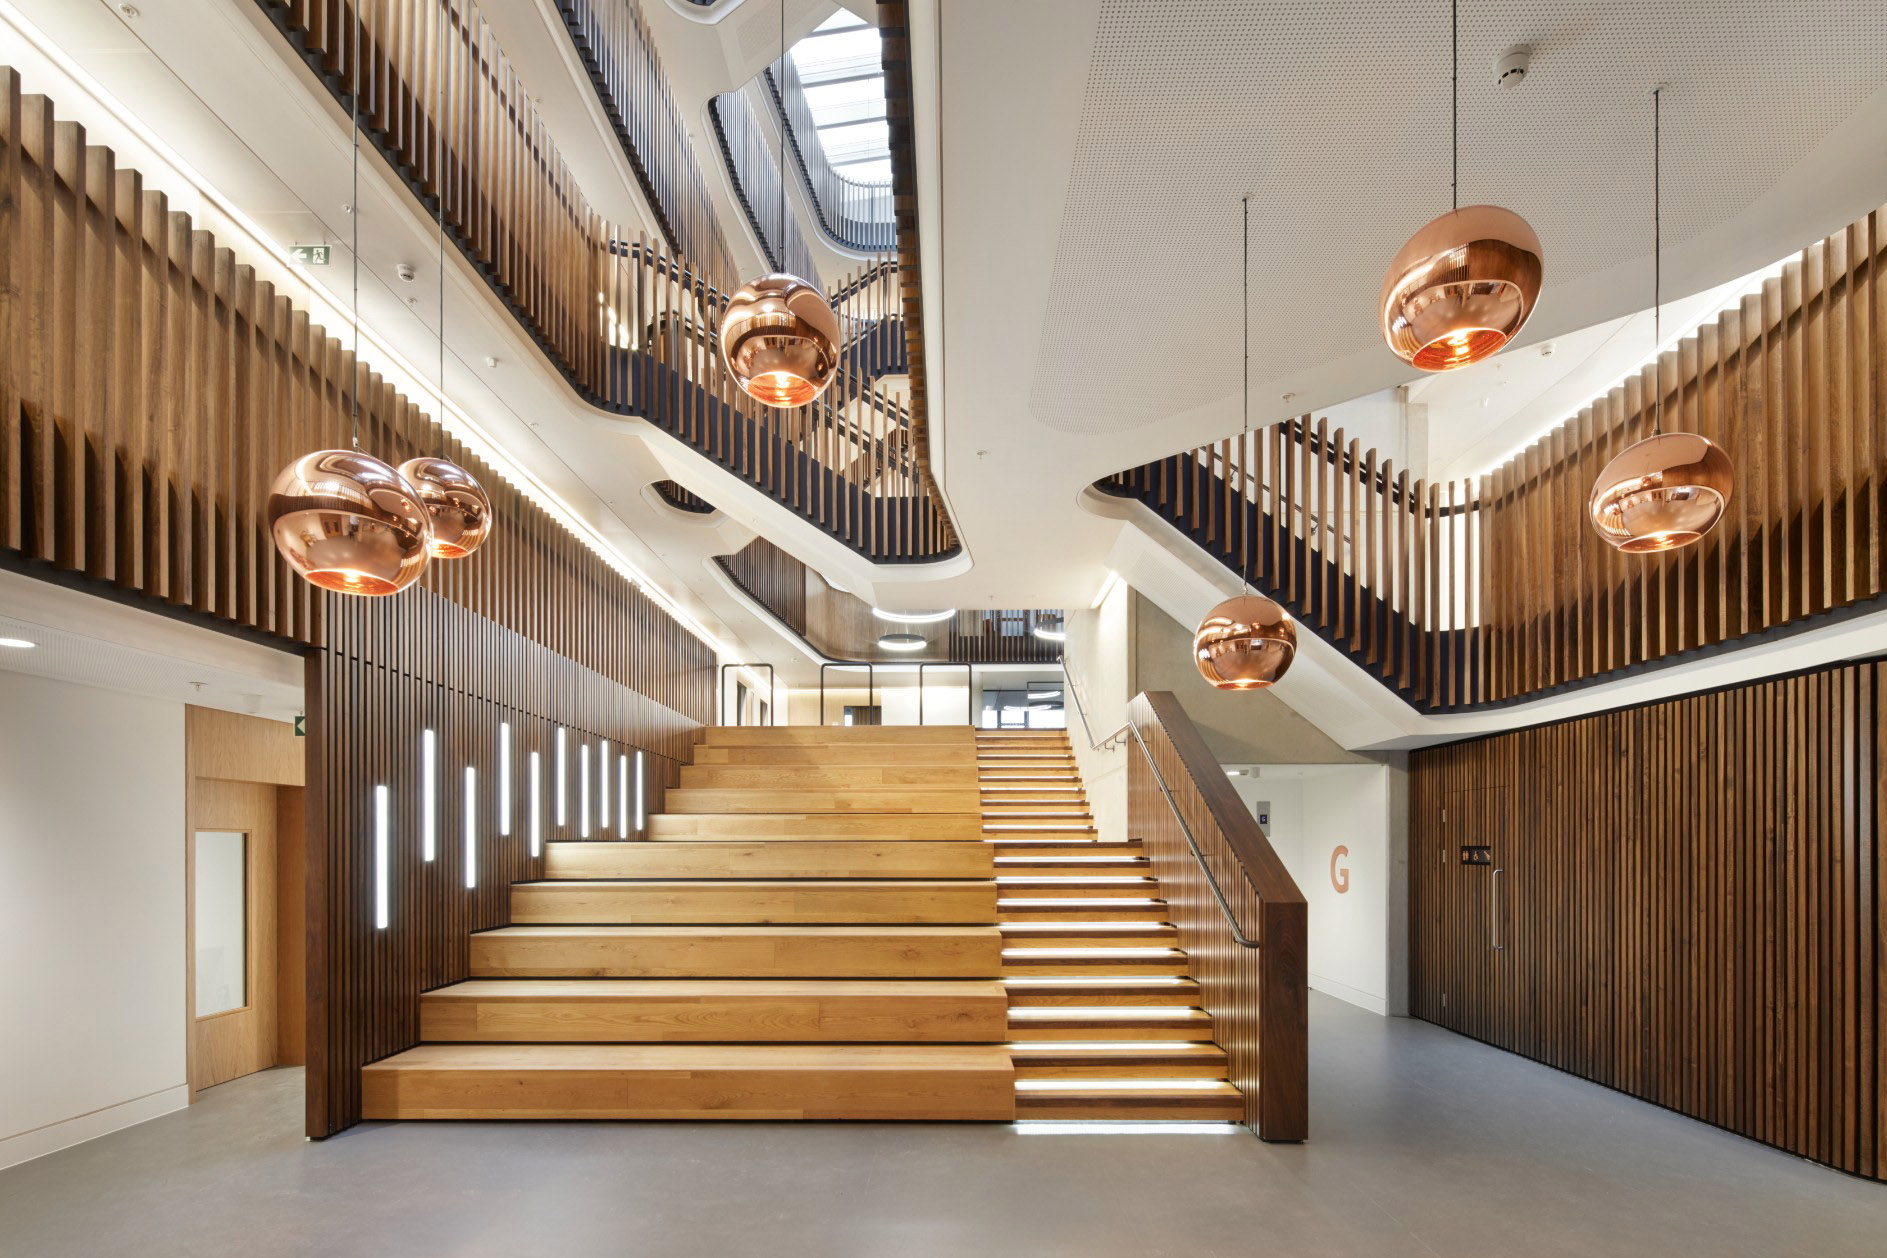 CONTEMPORARY ARCHITECTURAL FEATURE LIGHTING - THE BEECROFT BUILDING, OXFORD UNIVERSITY.